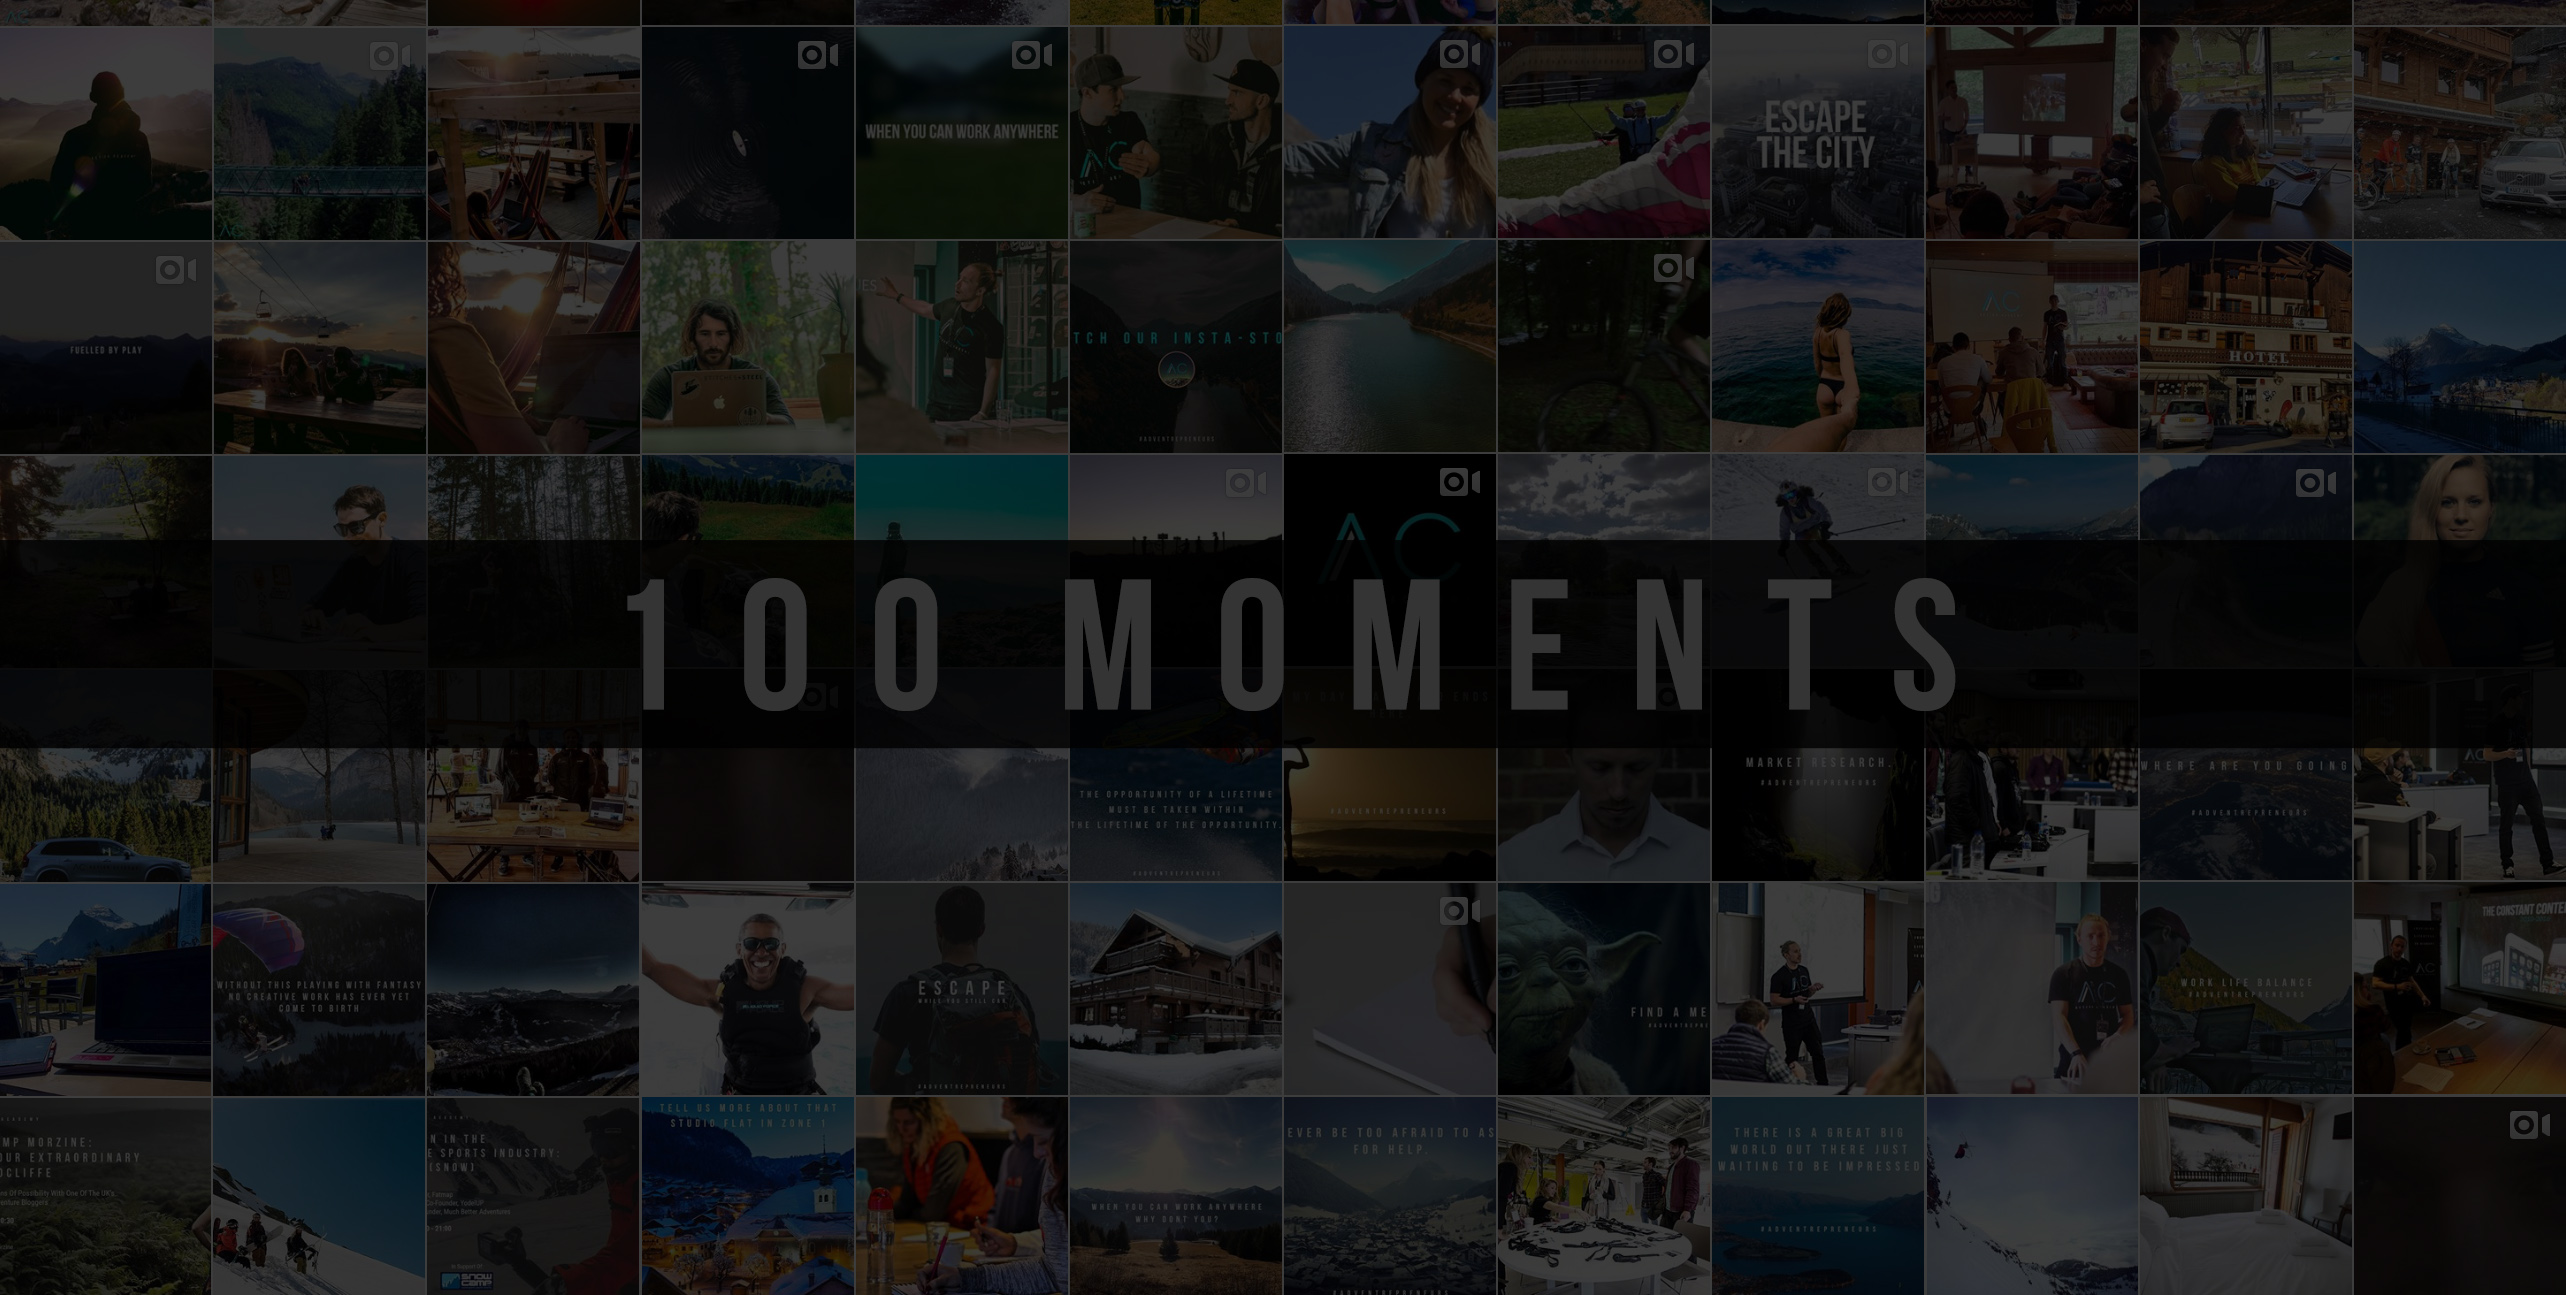 We're Celebrating 100 Moments Shared With Our Community